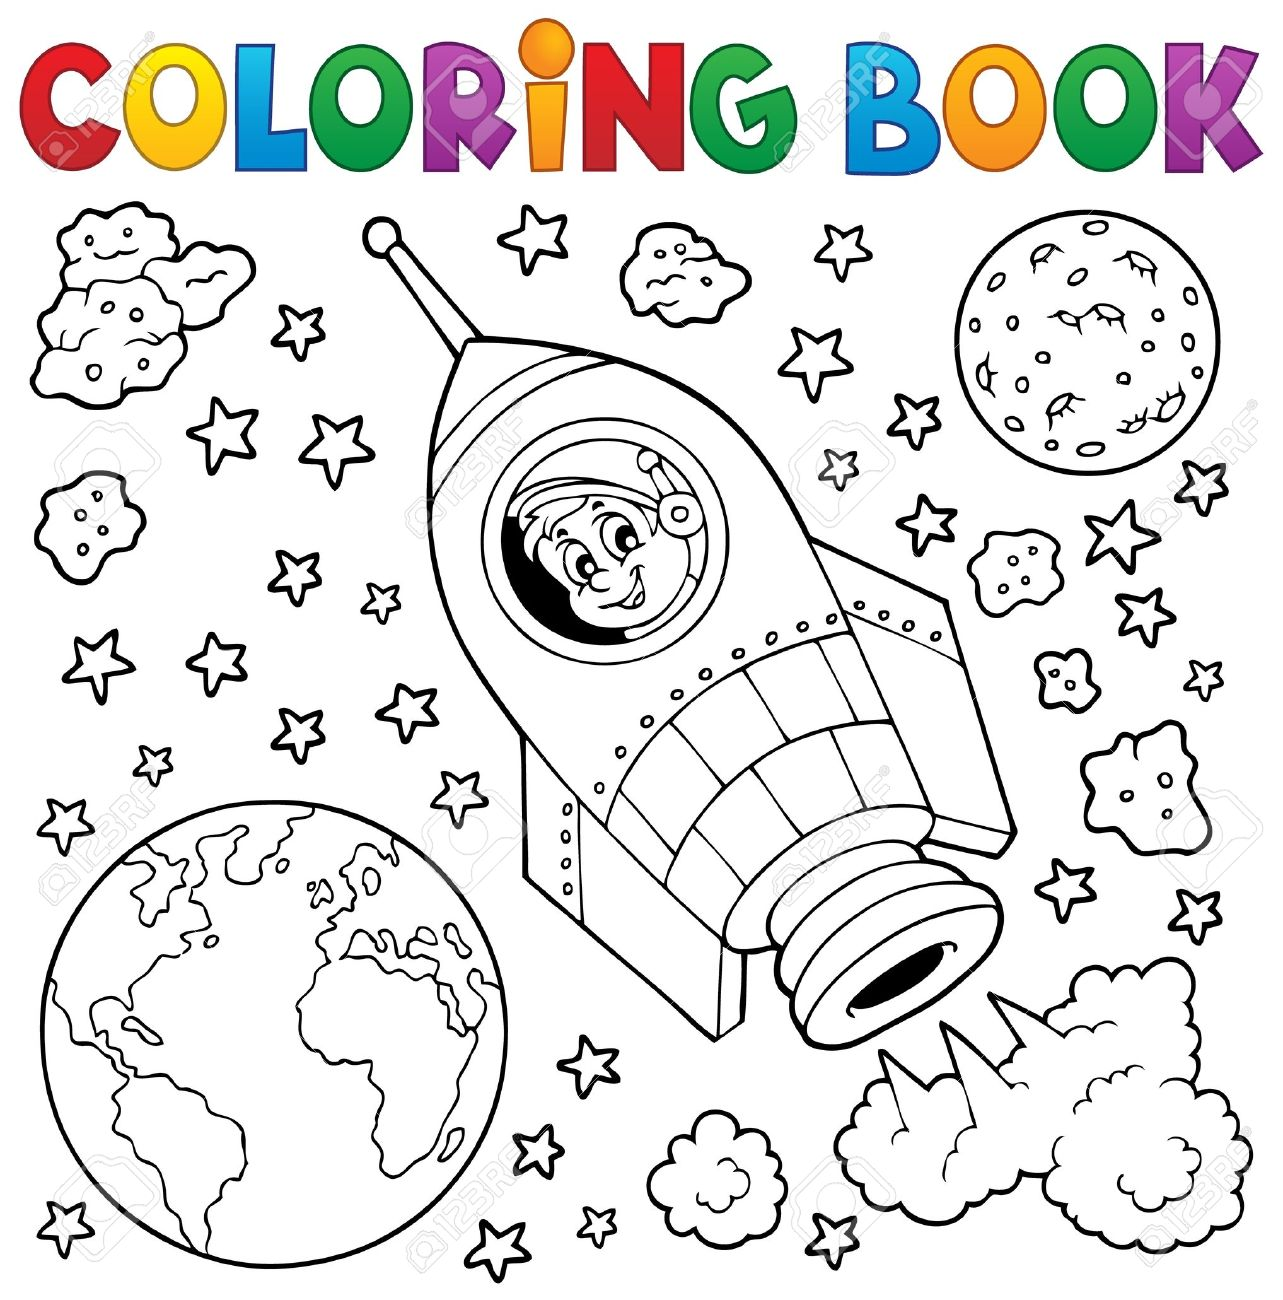 Coloring Book Space Theme 1 - Eps10 Vector Illustration. Royalty ...